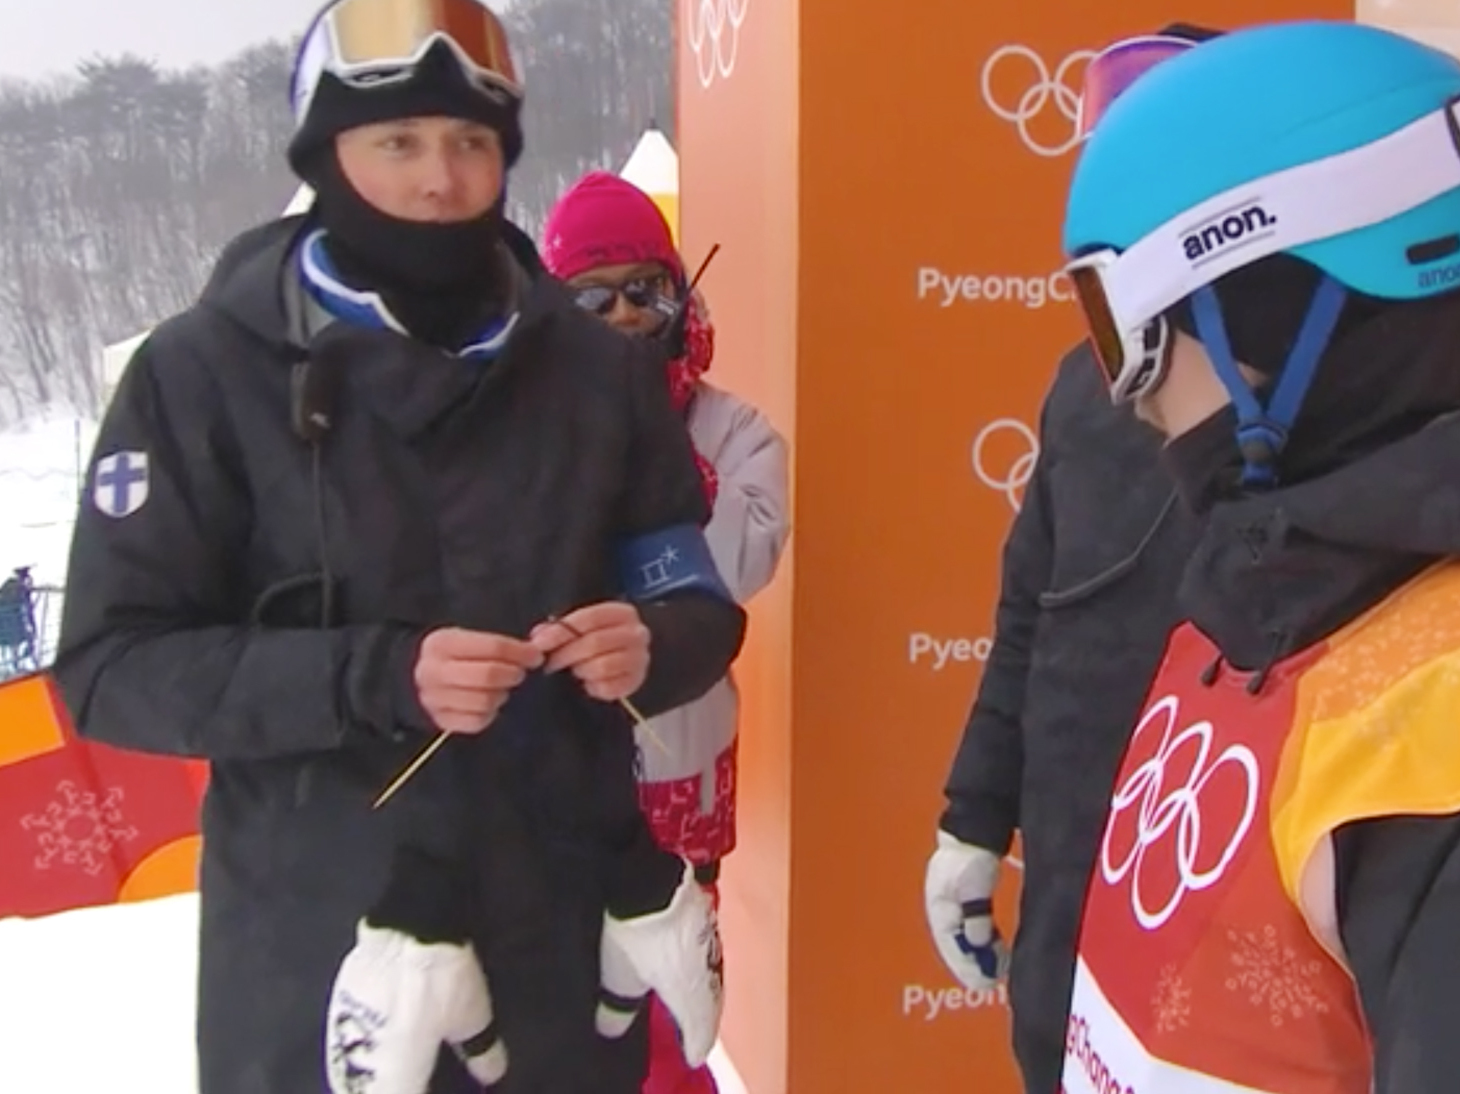 Knitting Olympics Coach : Finland takes olympic chill to the next level team